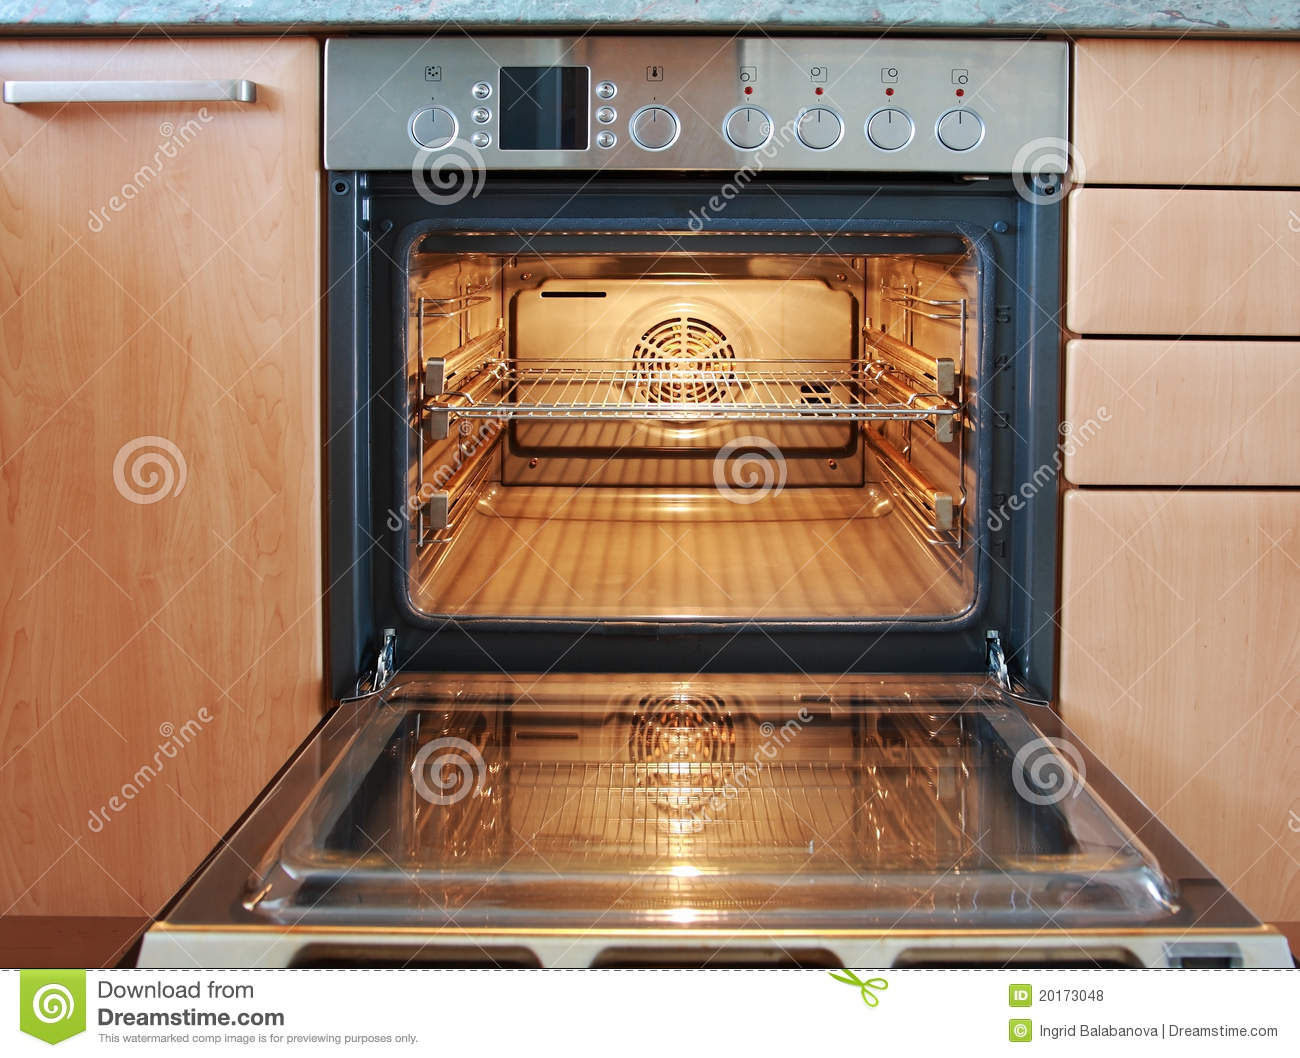 Open Oven Royalty Free Stock Photos - Image: 20173048